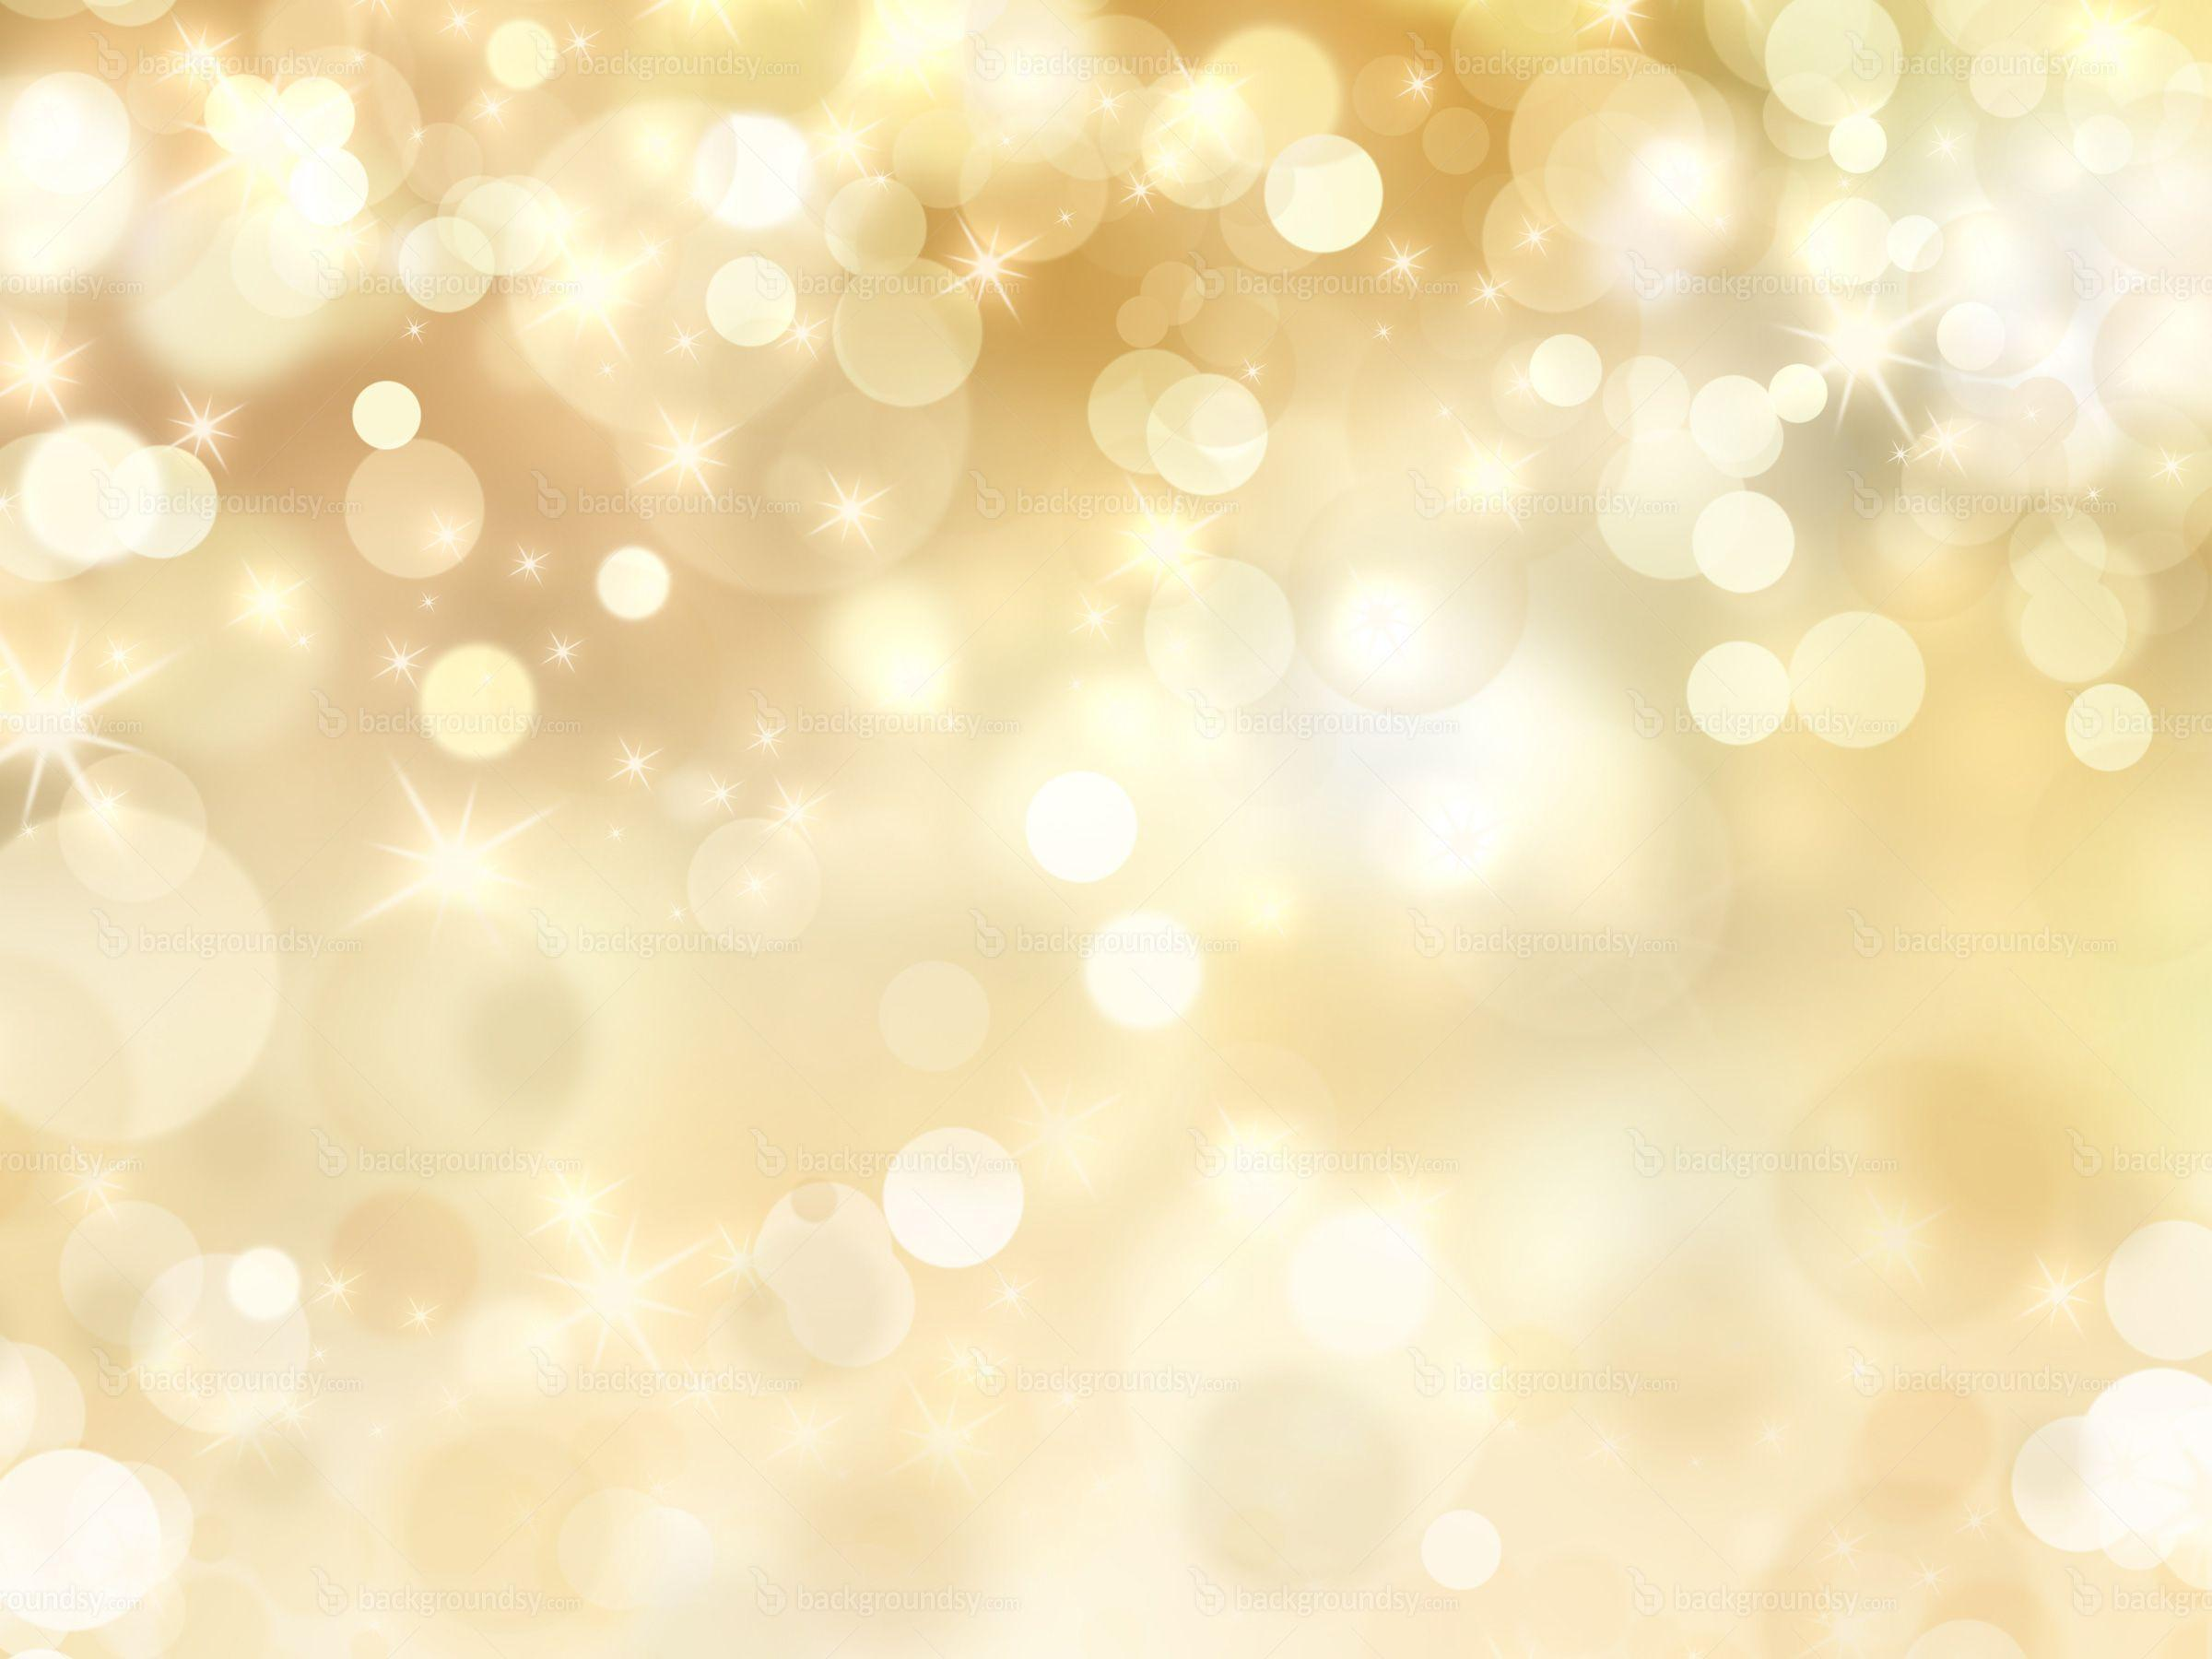 light gold vintage background - photo #31